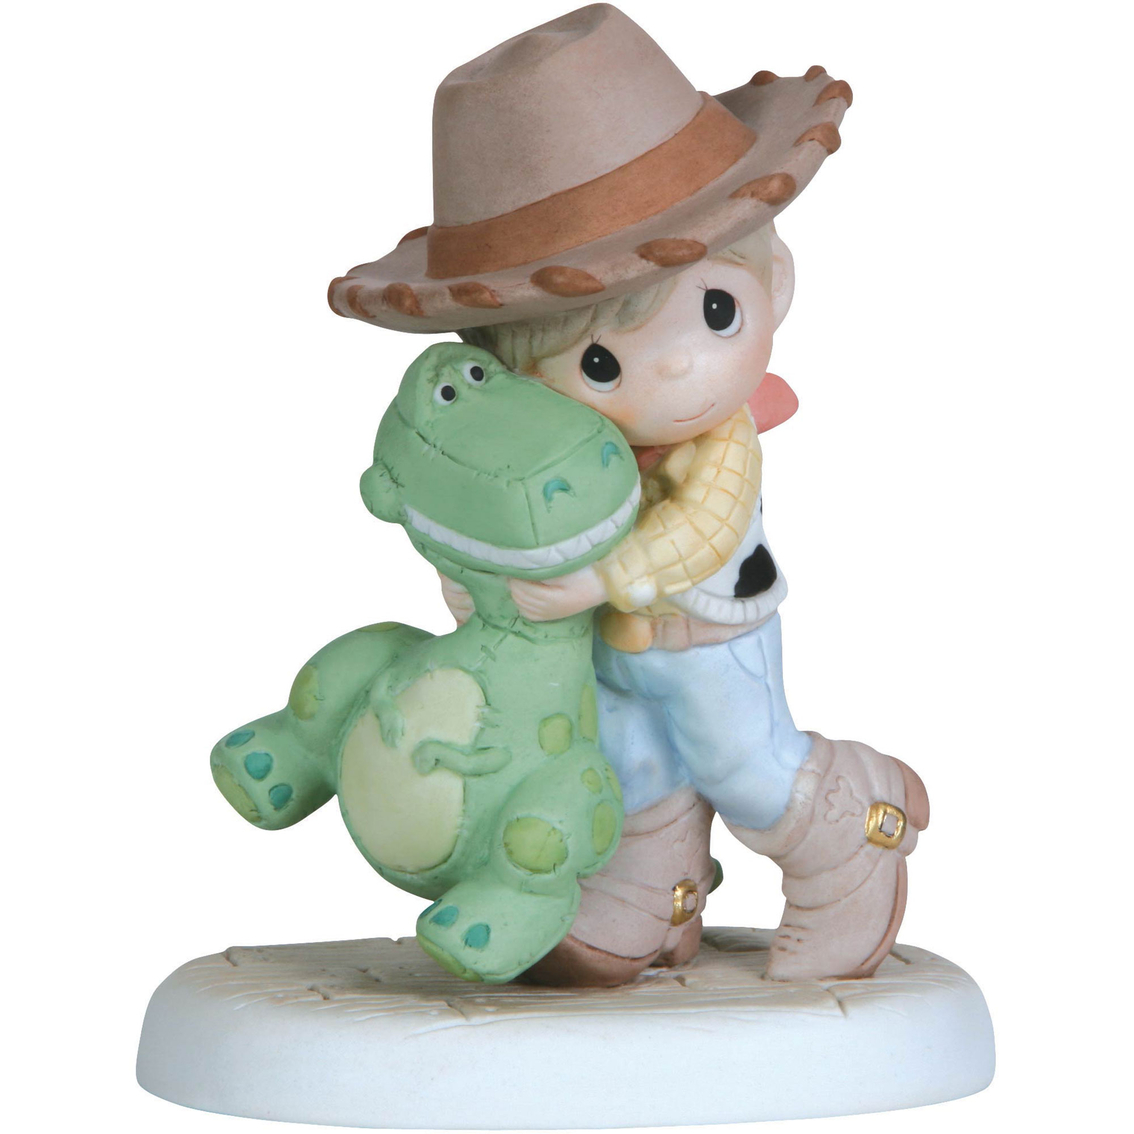 Toy Story Figurines : Precious moments our love will never go extinct figurine